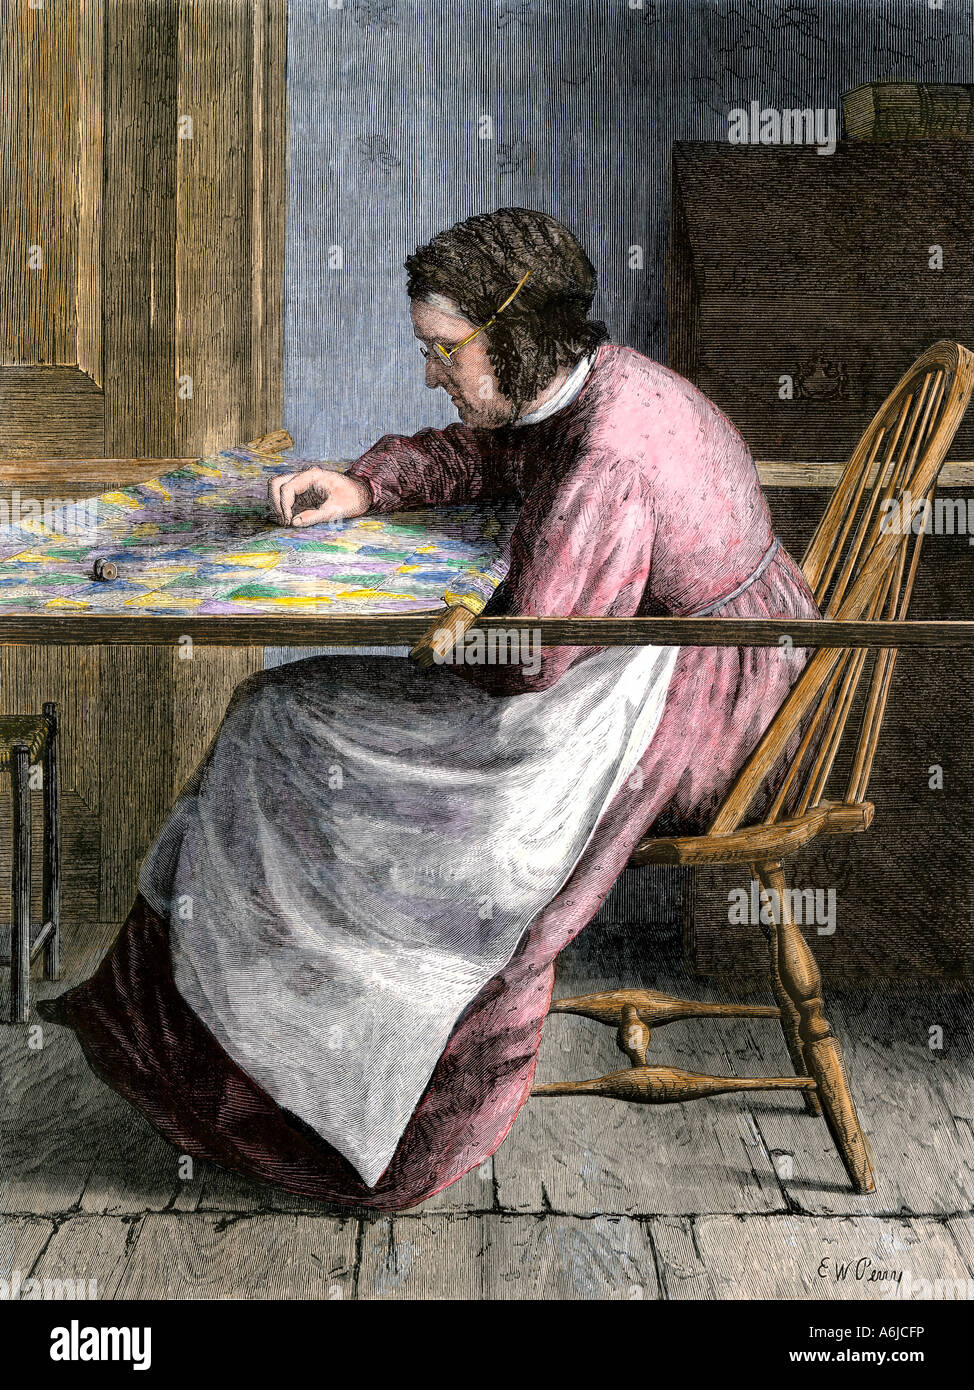 Woman stitching a patchwork quilt 1800s - Stock Image